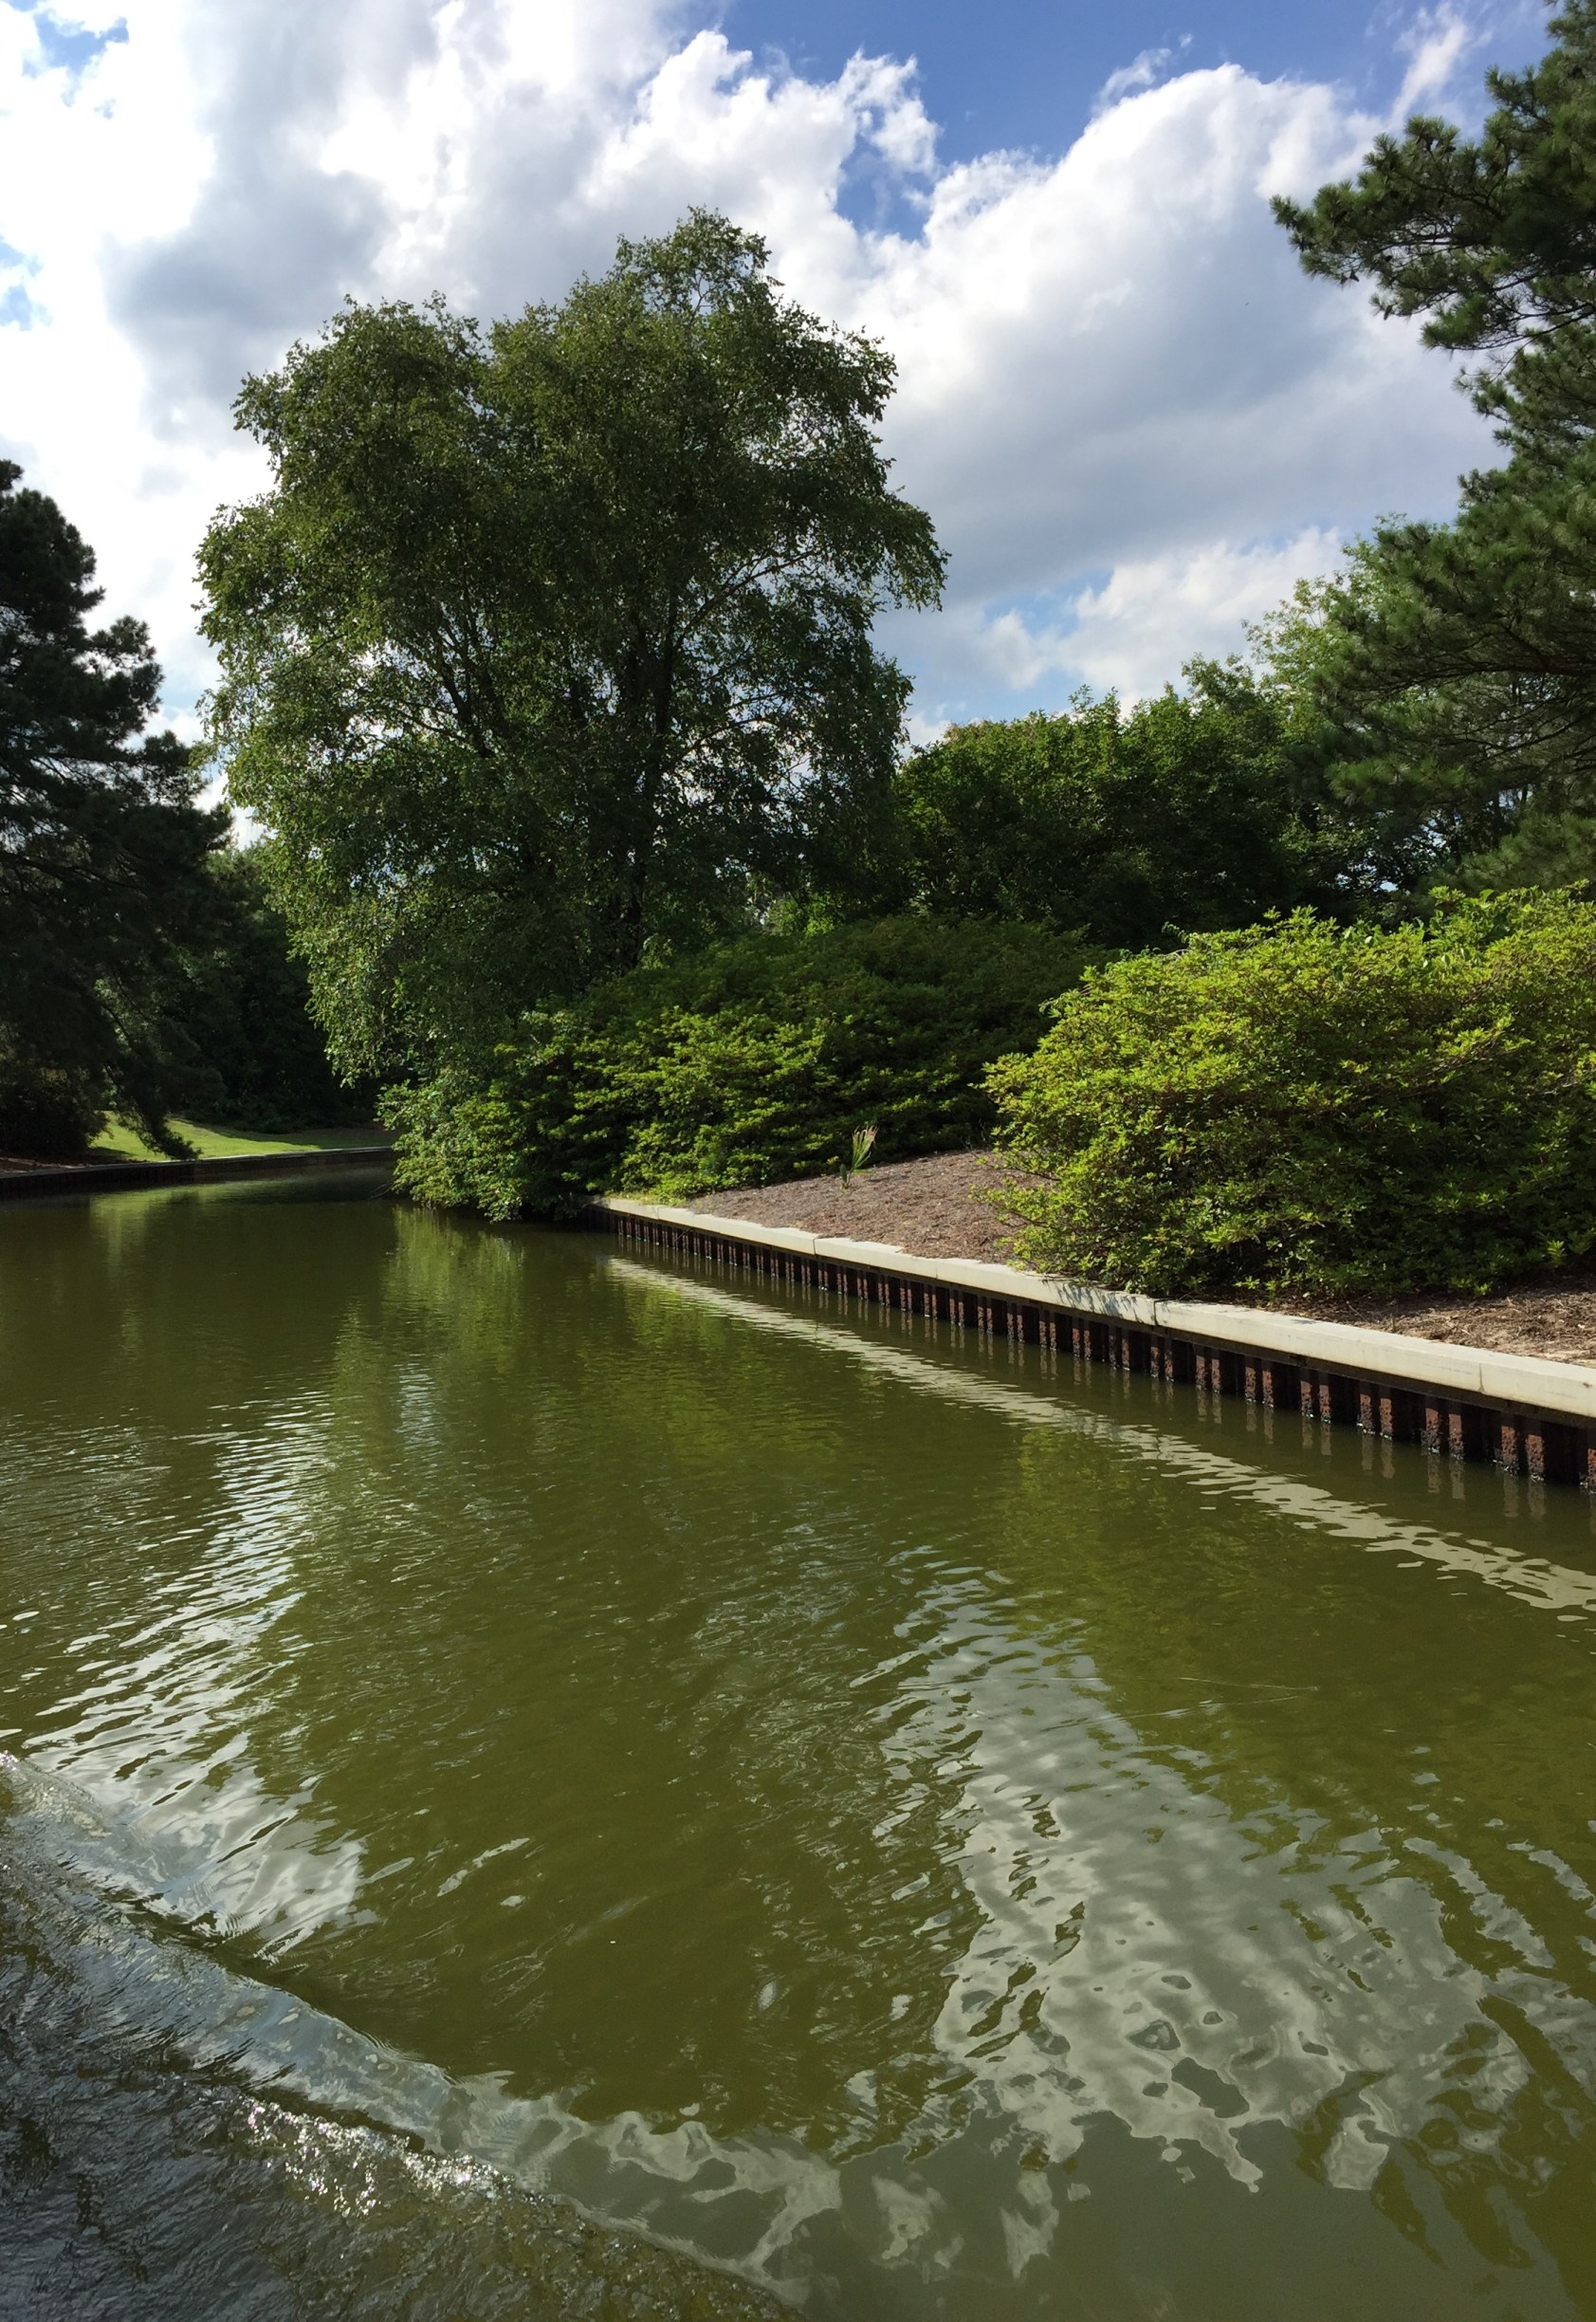 Traveling the canal gives an alternative view of the garden. Photo © 2018 Elaine Mills.